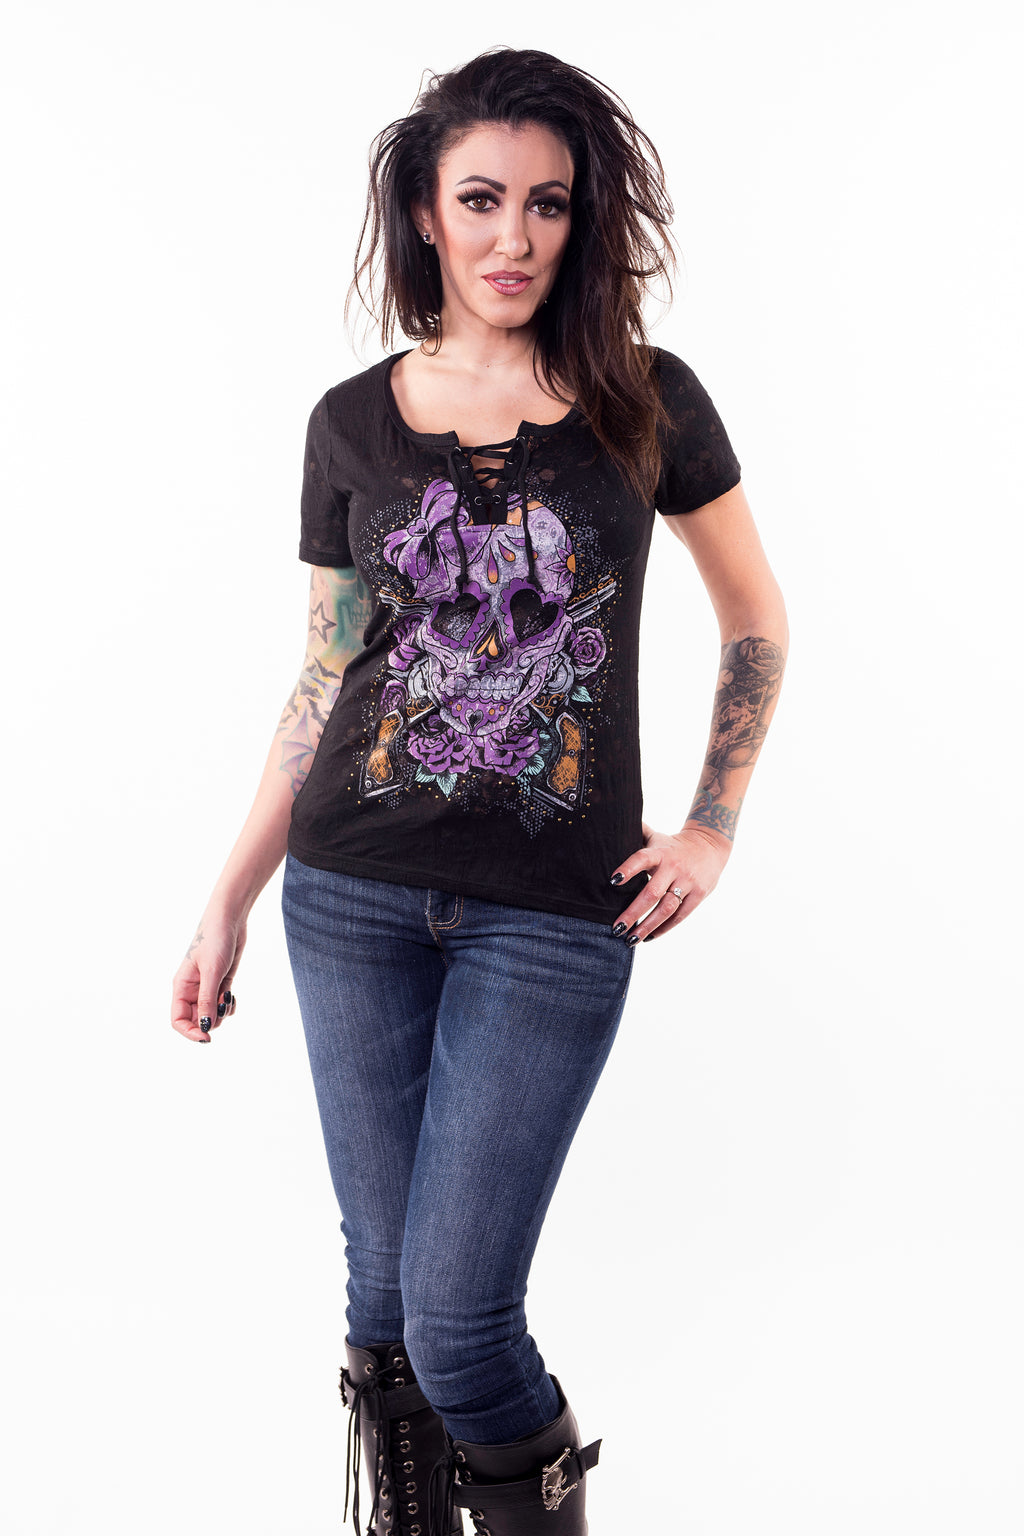 Vintage Day of the Dead Skull n Guns Burn Out Lace Up Tee